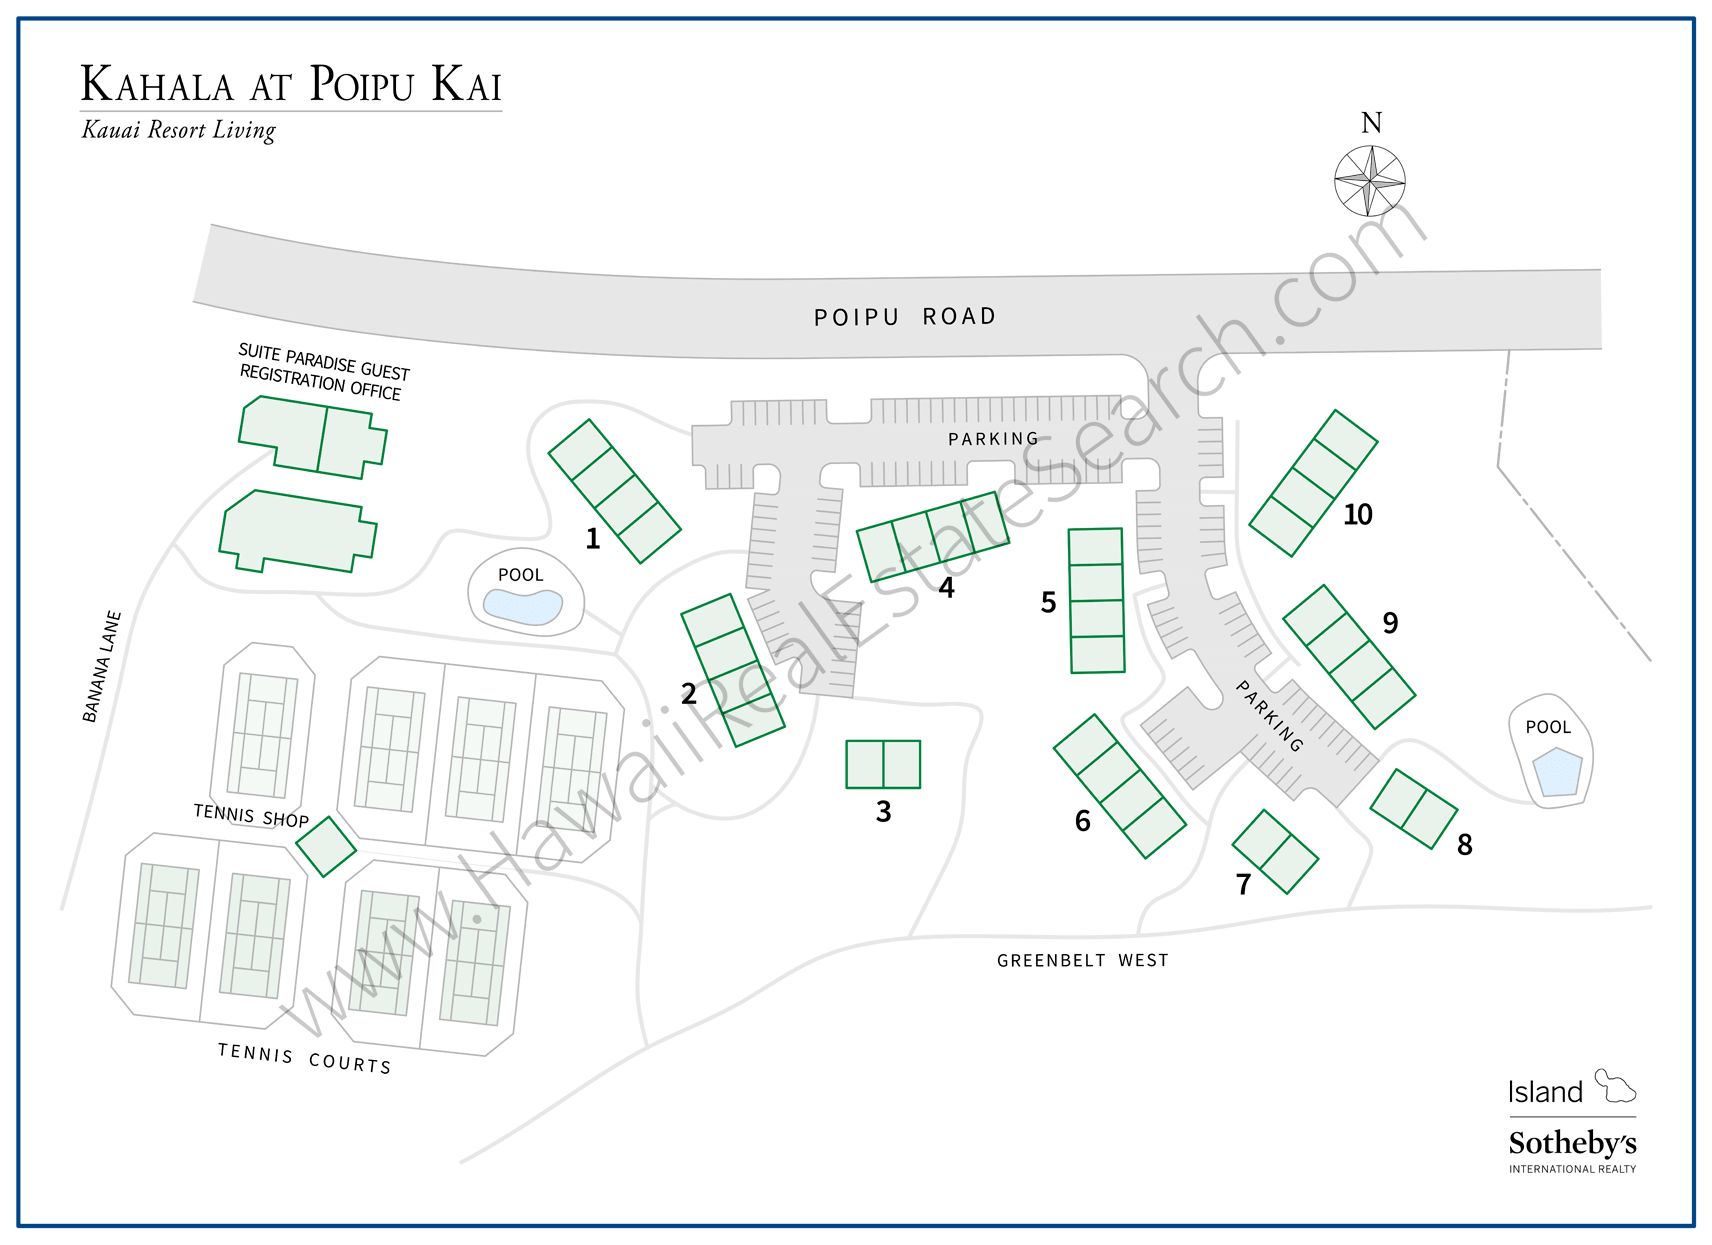 Kahala at Poipu Kai Map